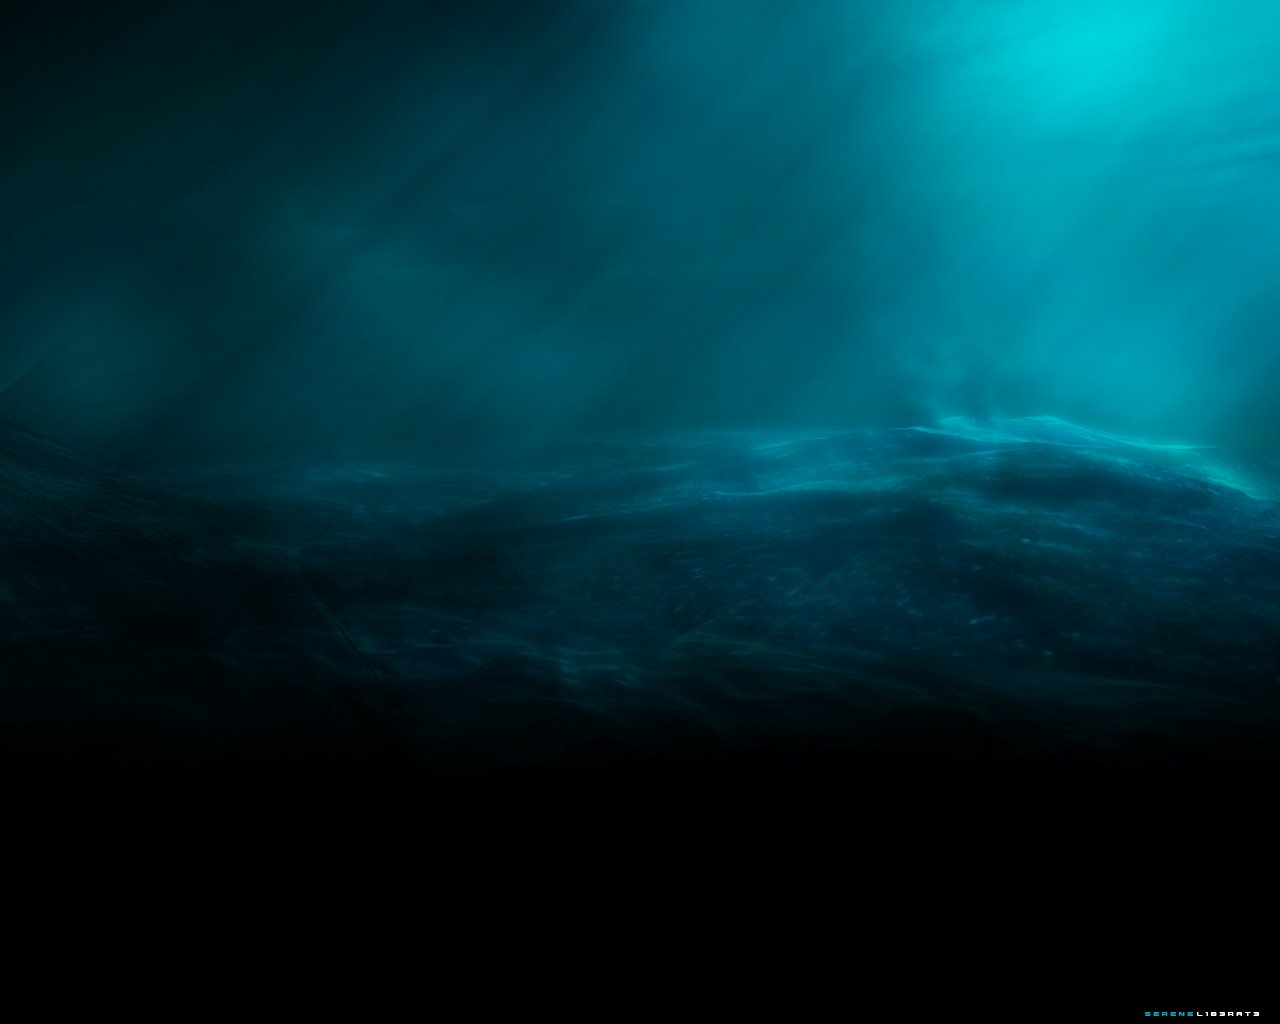 ocean depth wallpaper background 1280x1024